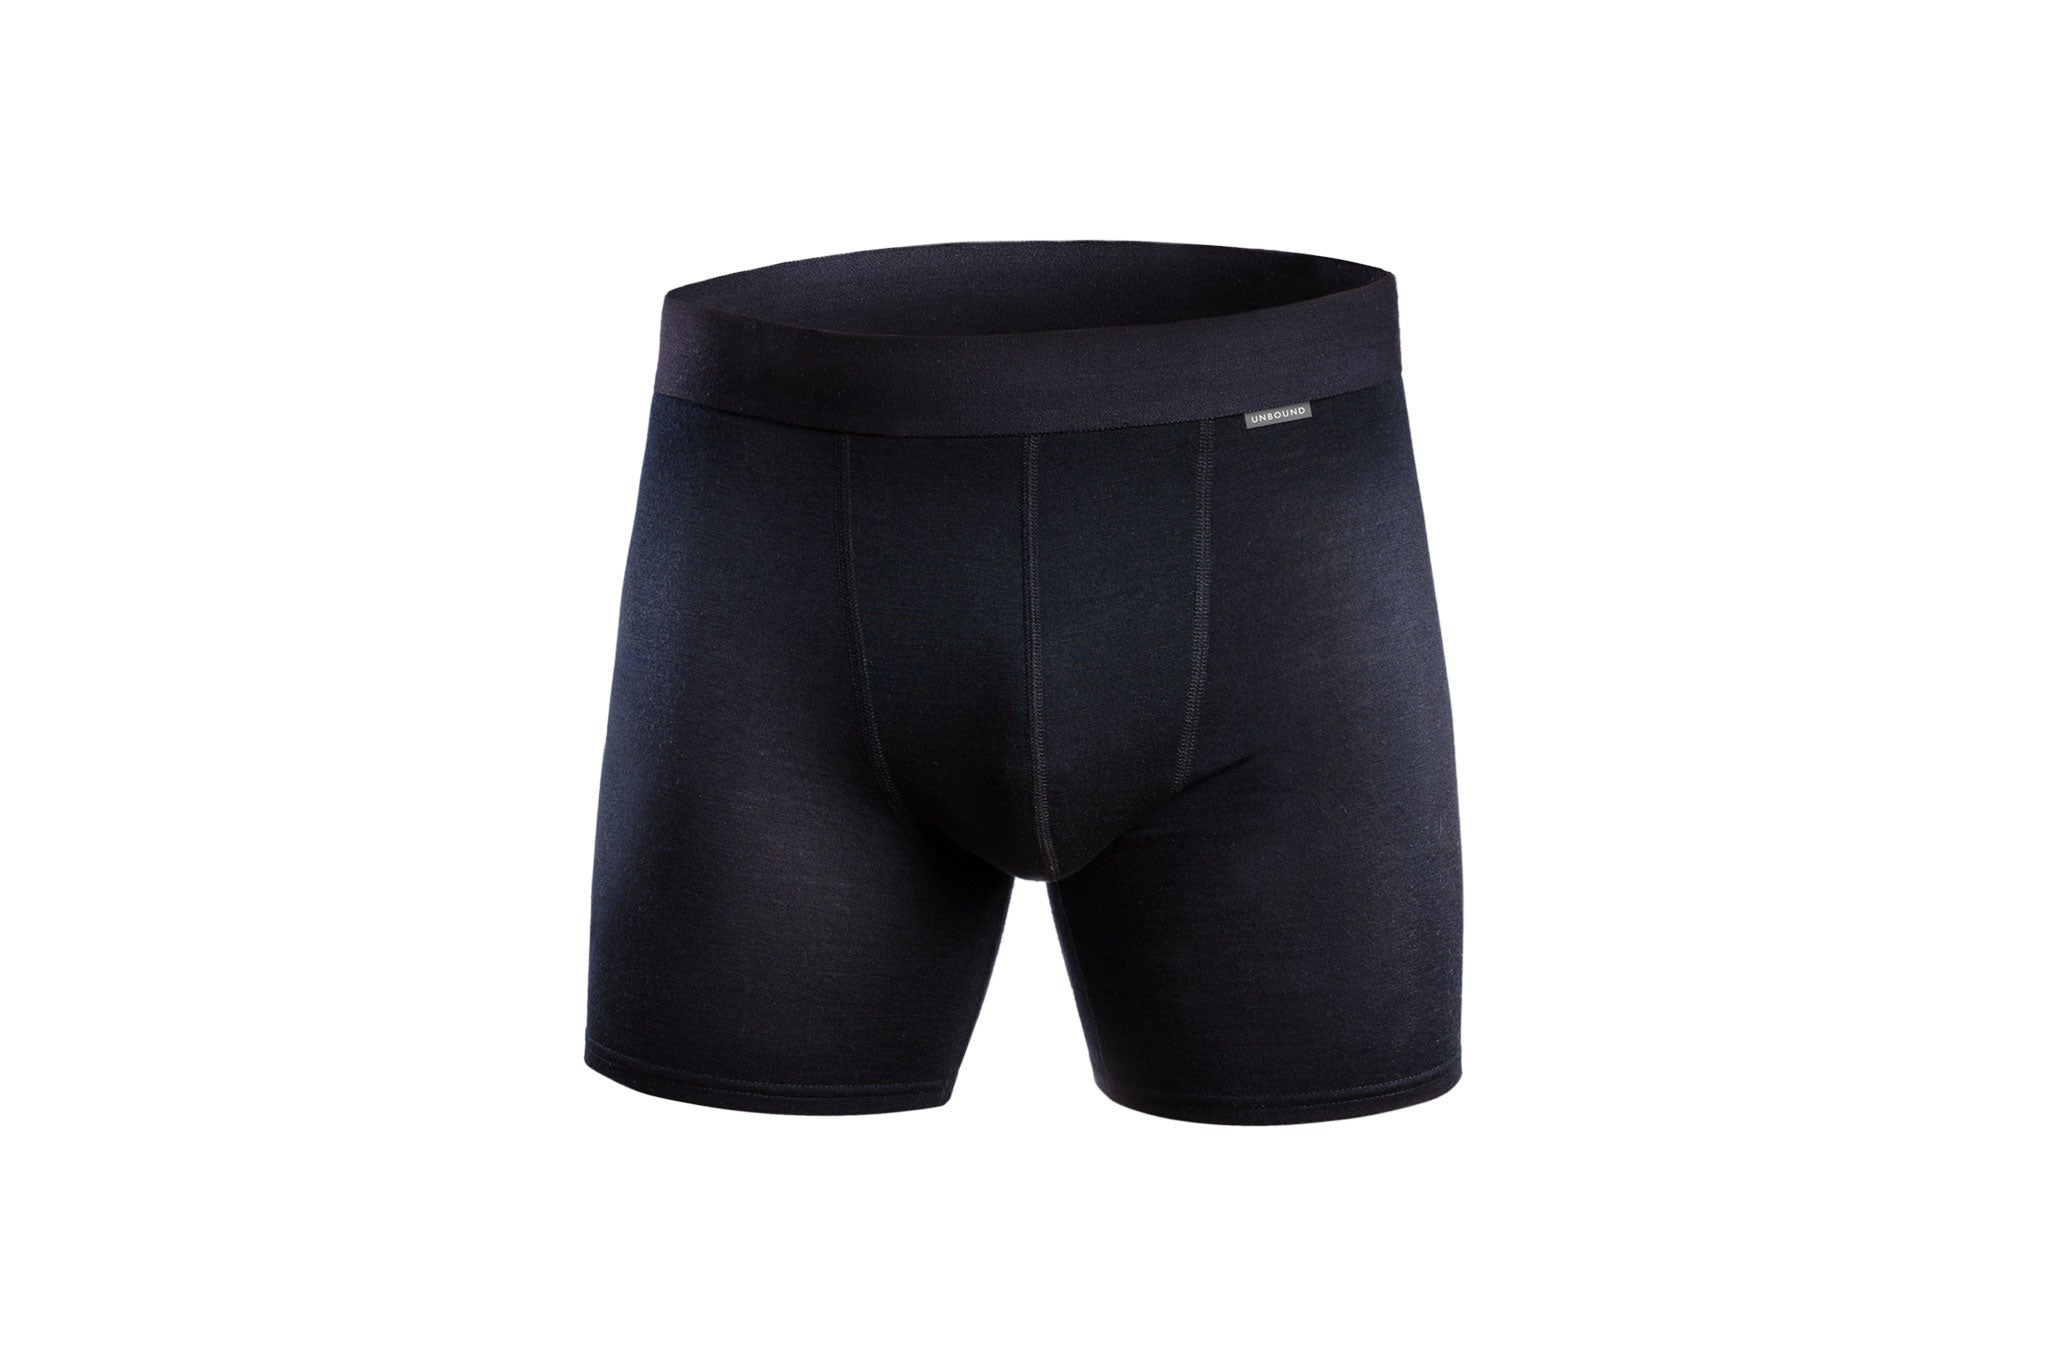 5 Pack // Black Merino Boxer Briefs